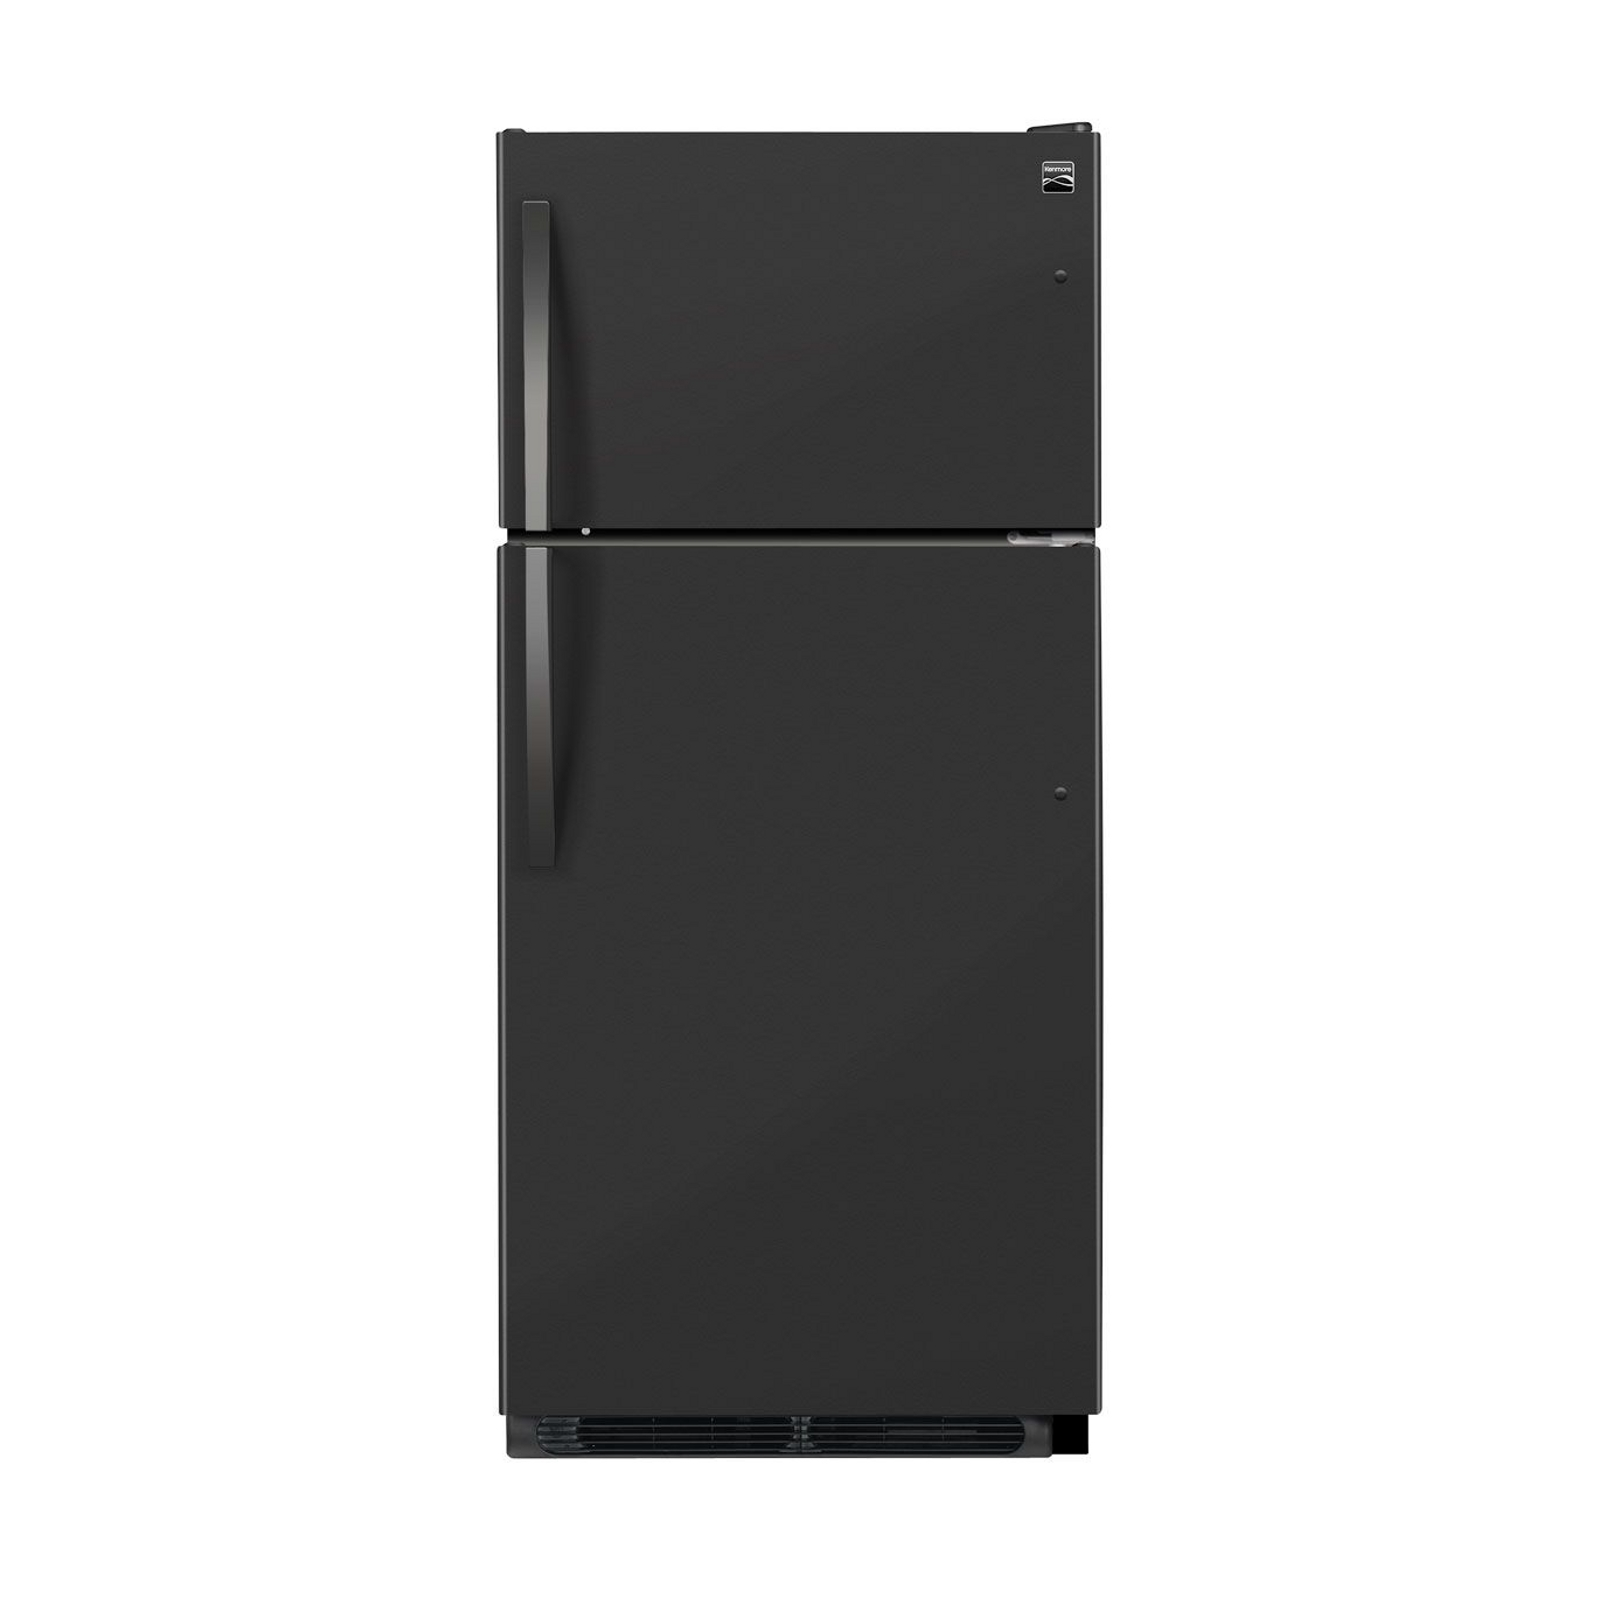 Kenmore - 72629 14.8 Cu. Ft. Top-freezer Refrigerator Black Sears Outlet